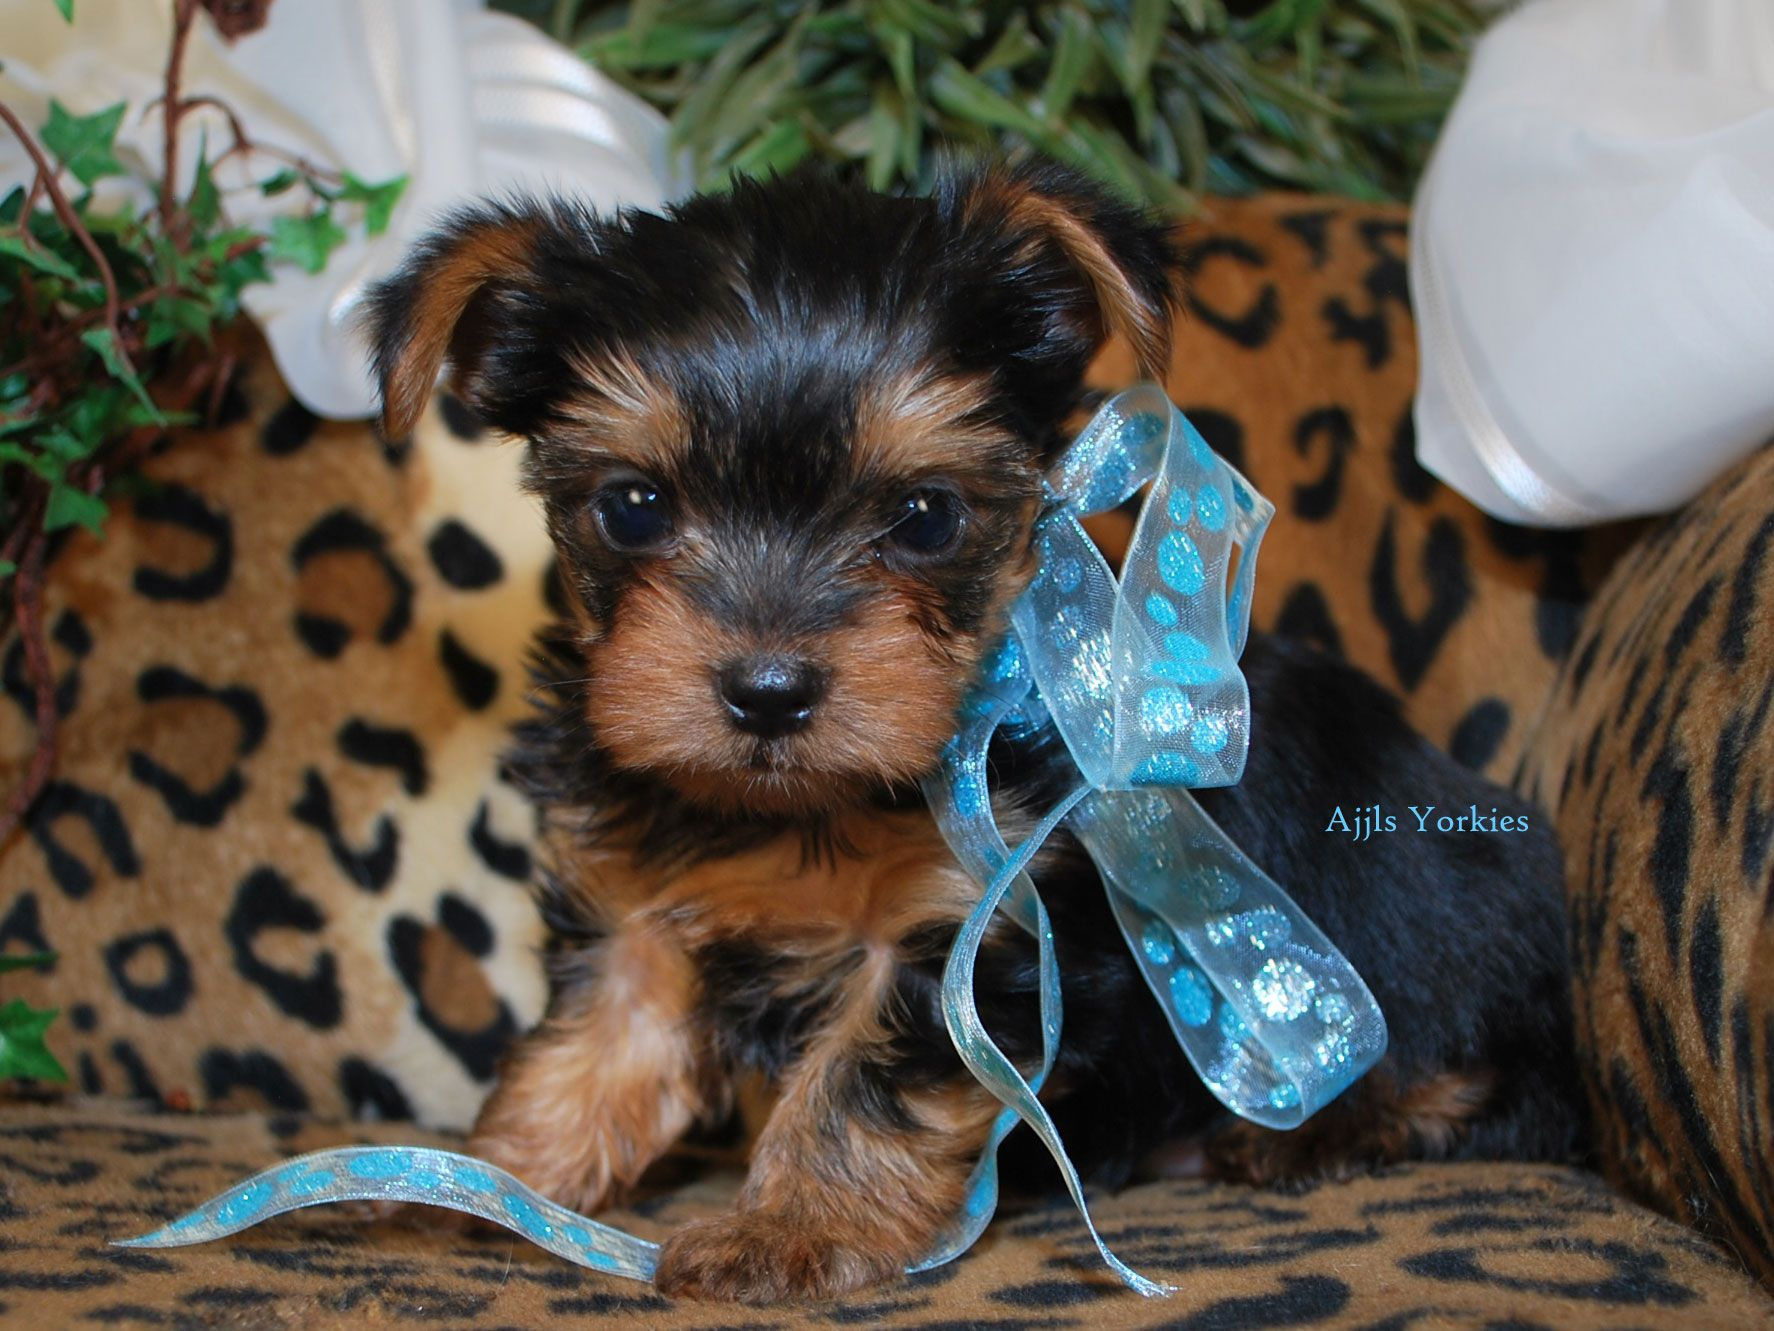 Teacup Yorkie New York Rolex (With images) Yorkie puppy